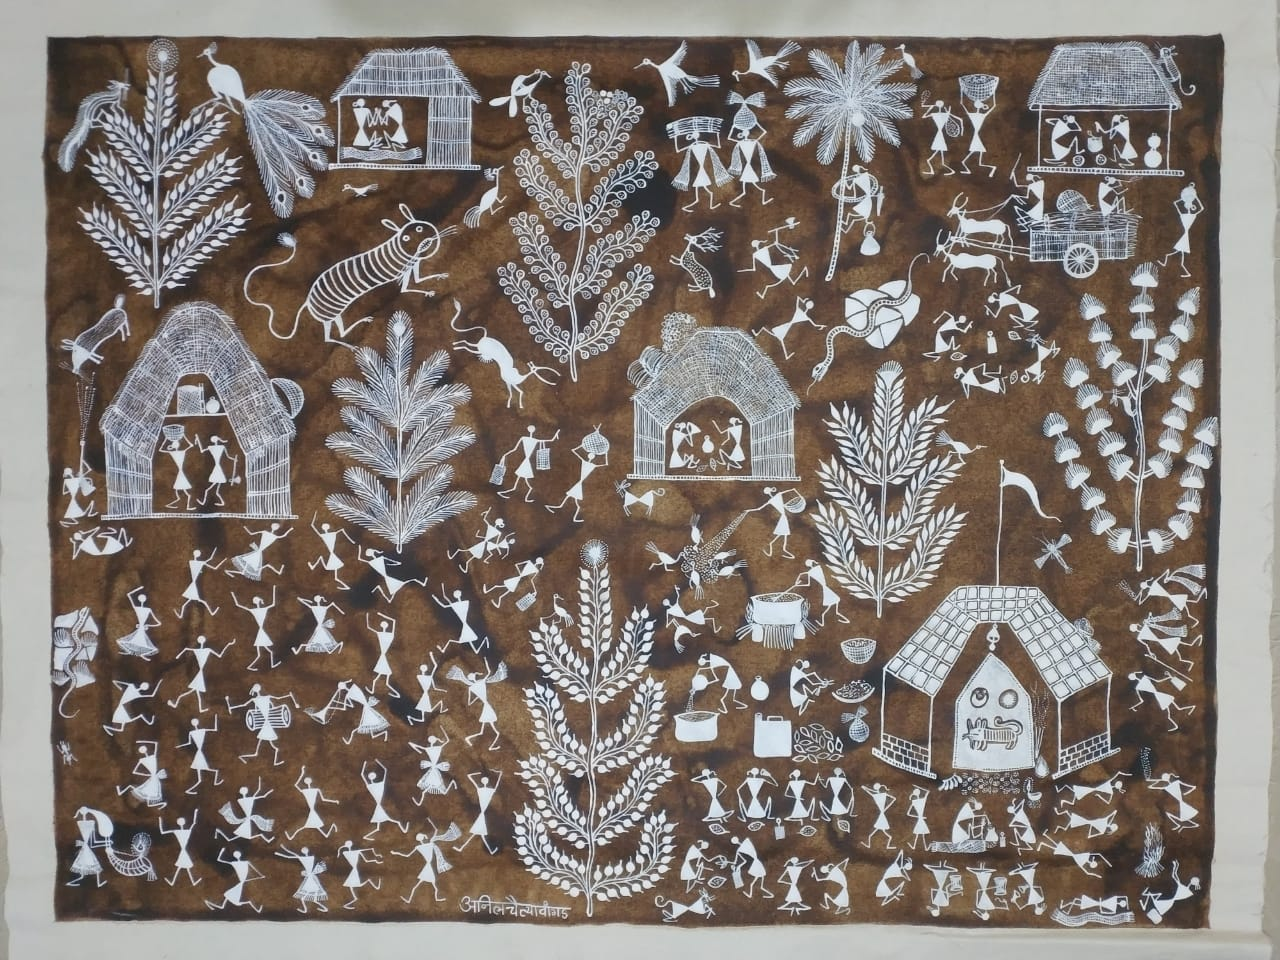 Village Life: Warli painting by Anil Wangad